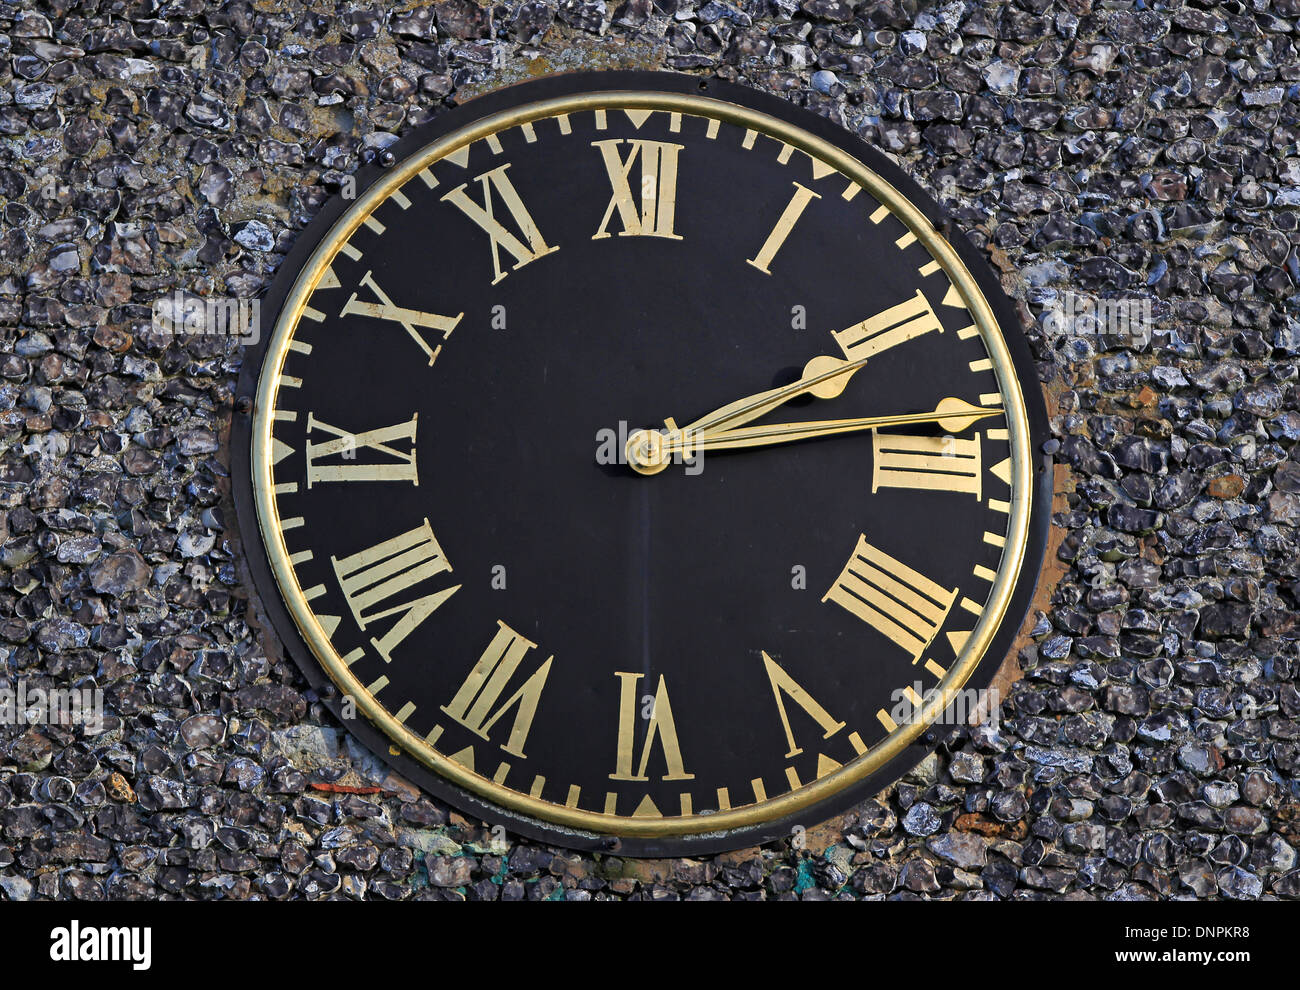 Circular black clock with gold roman numerals attached to a flint wall - Stock Image